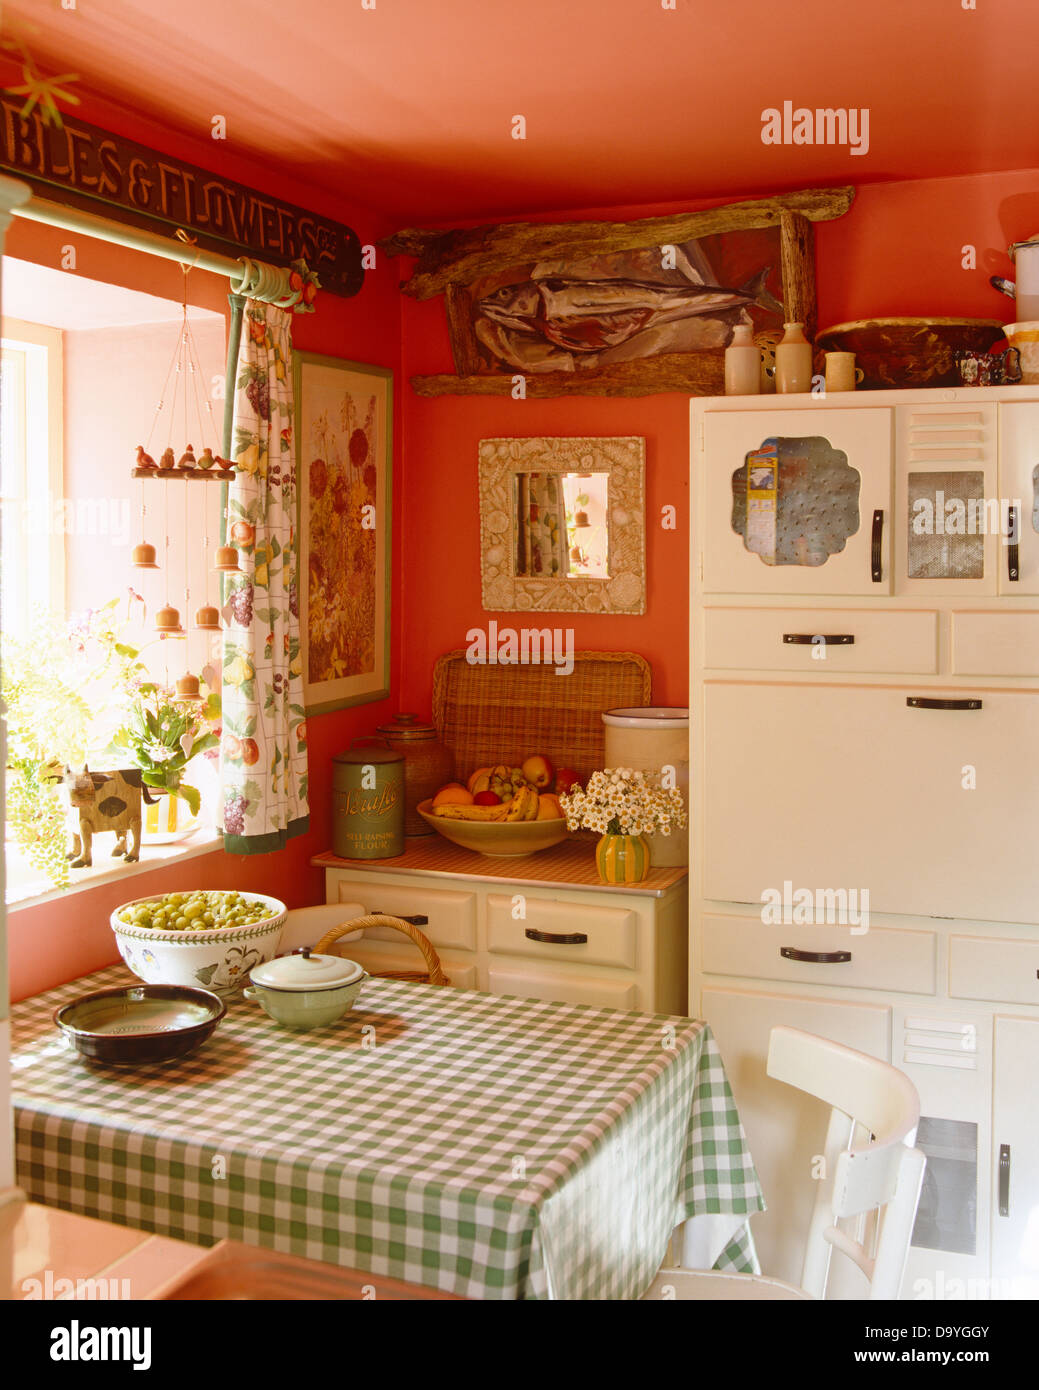 red country kitchens. Delighful Country Green Checked Cloth On Table Beneath Window In Red Country Kitchen With  White Painted Fifties Cupboard On Red Country Kitchens